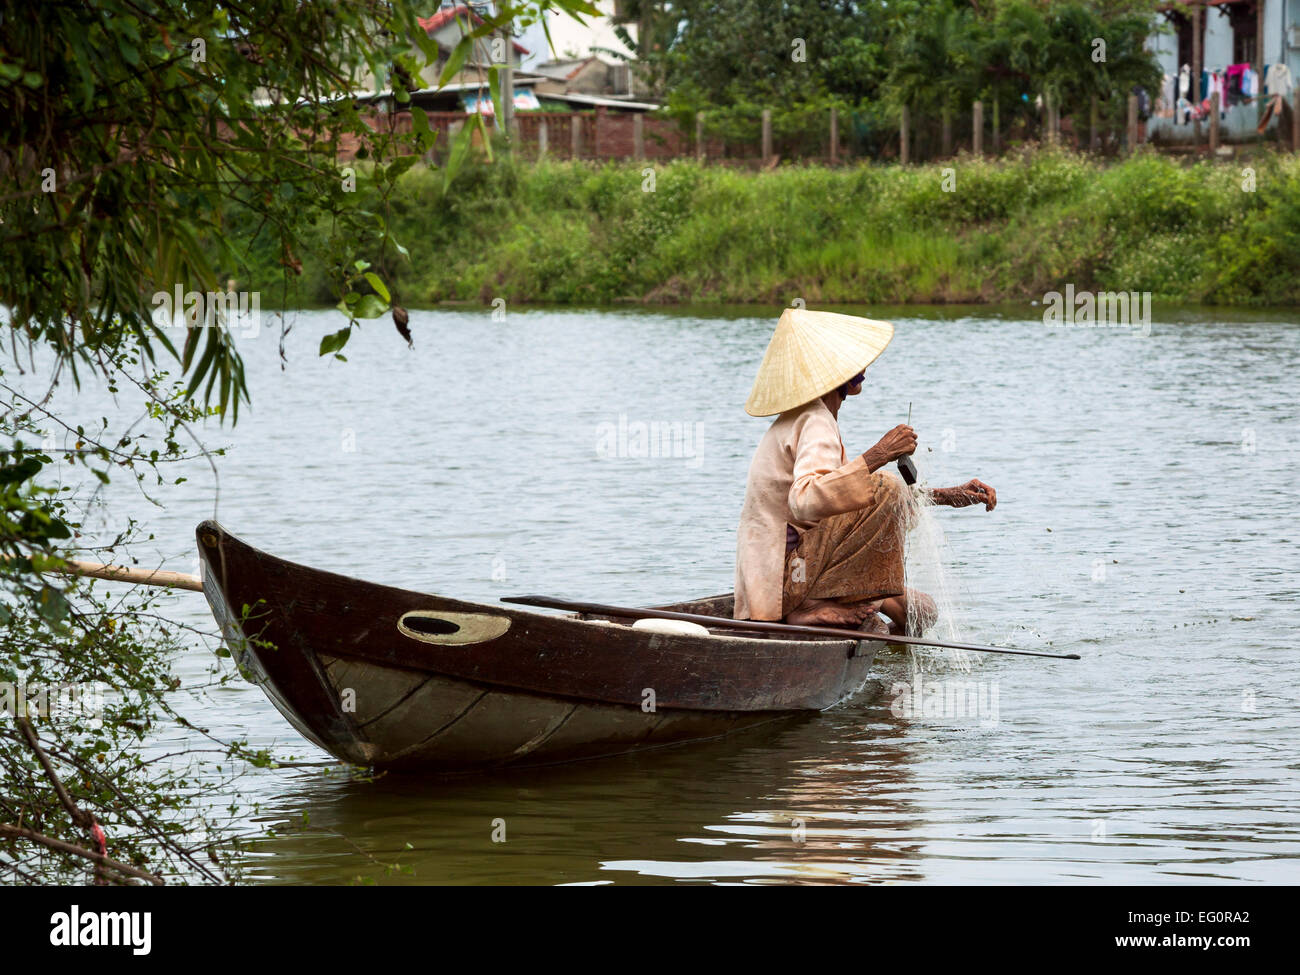 Traditionally dressed old woman fishing from her small fishing boat, Hoi  An, Vietnam, Indochina, Southeast Asia, Asia.